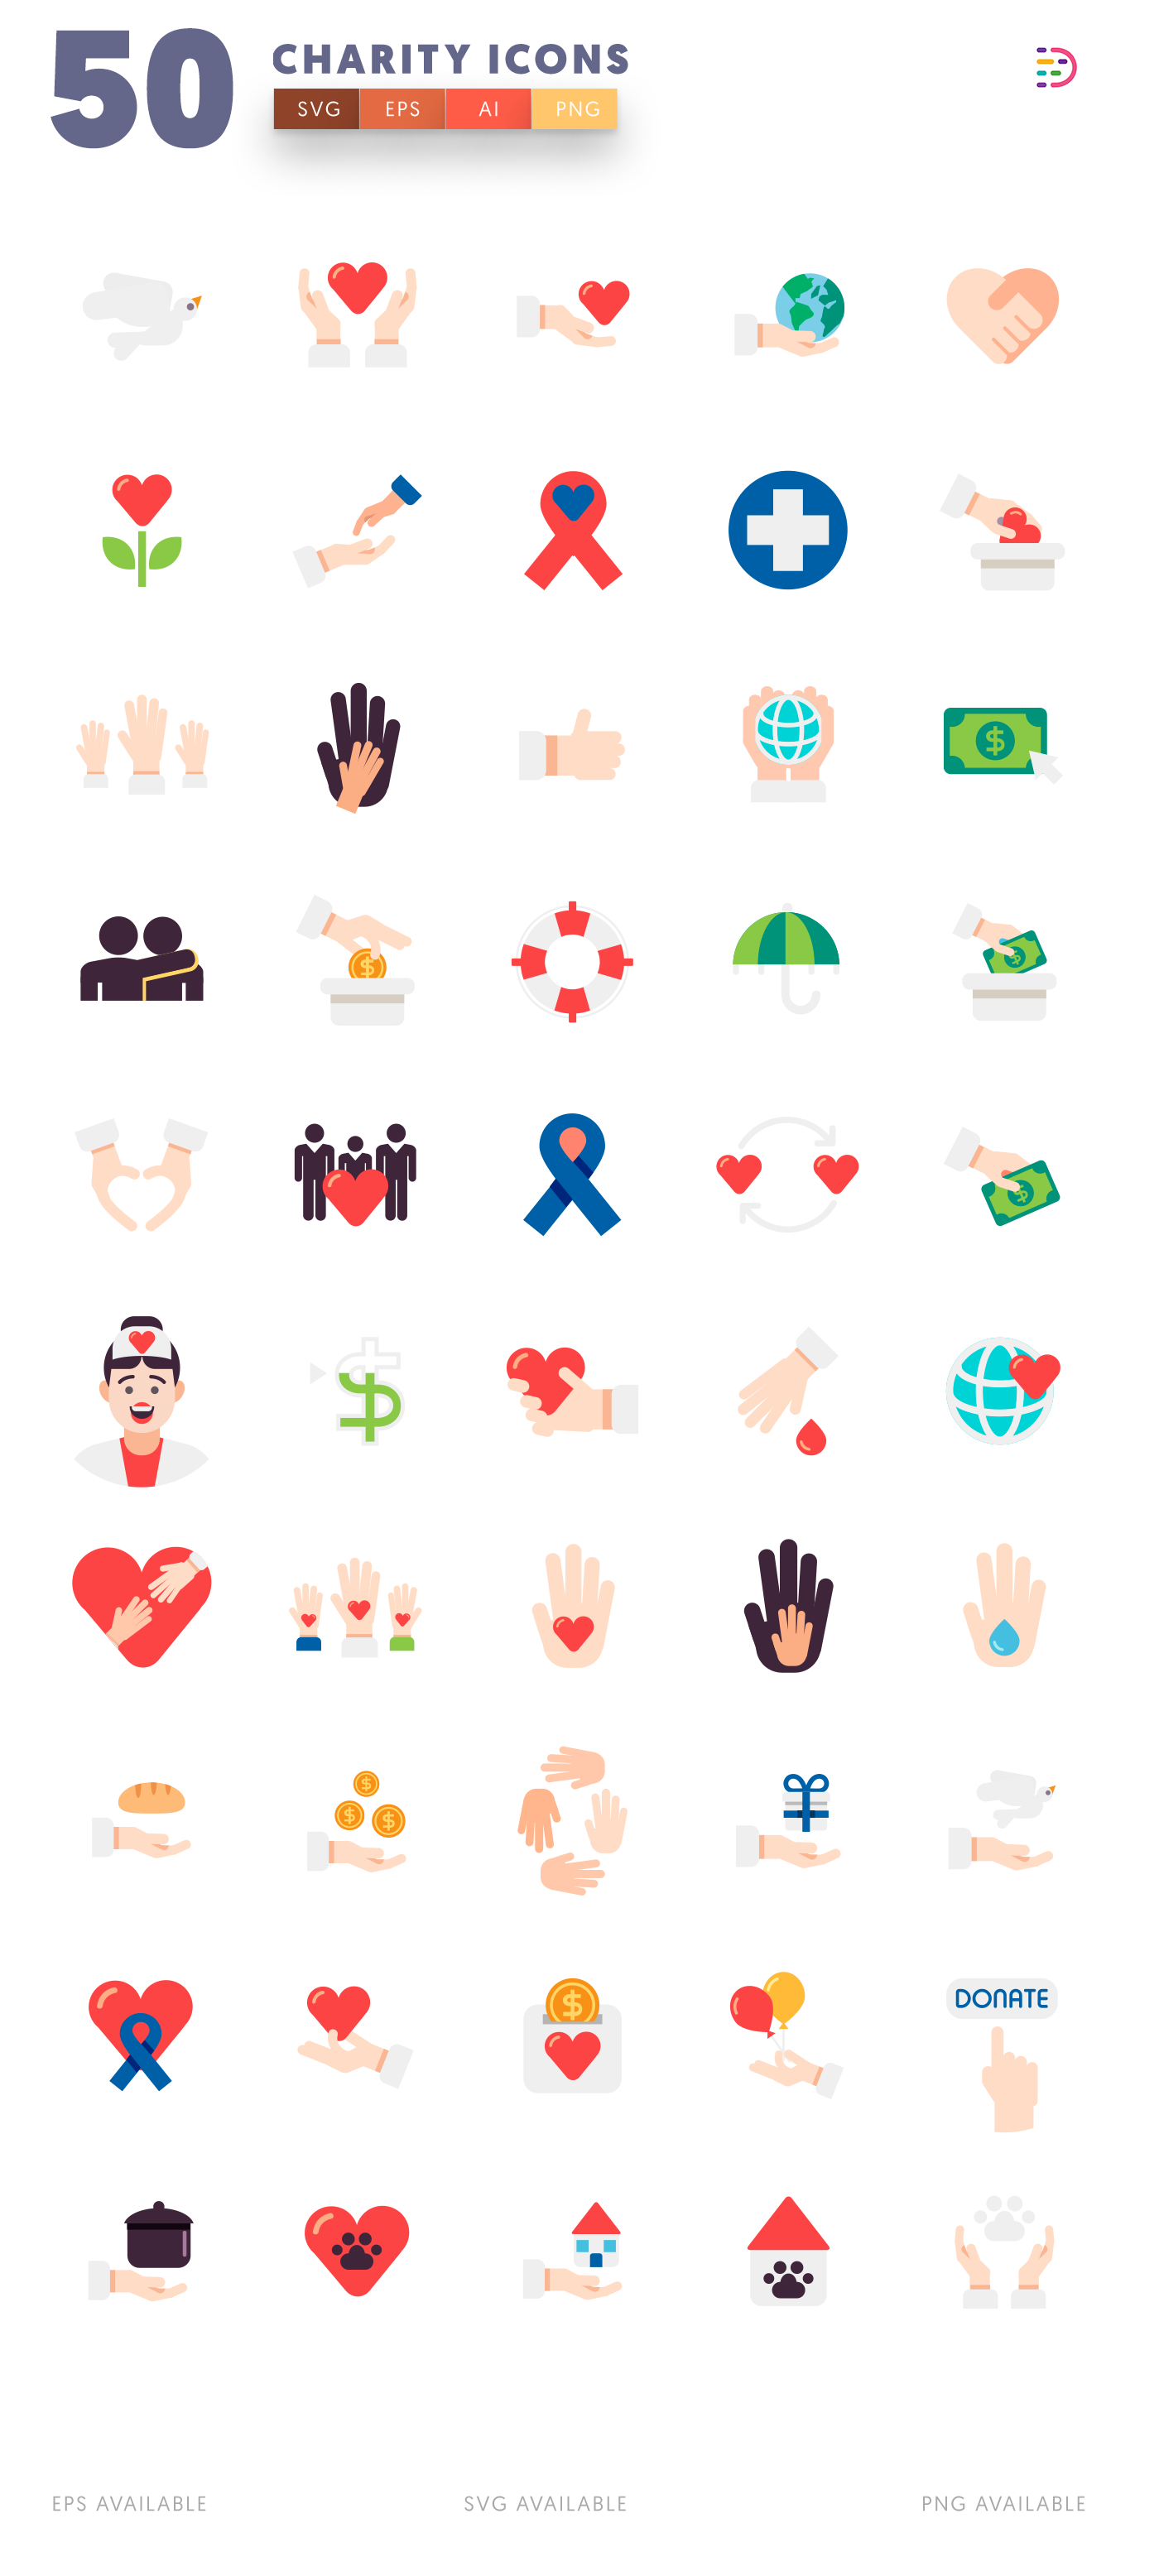 Compatible 50 Charity Icons pack